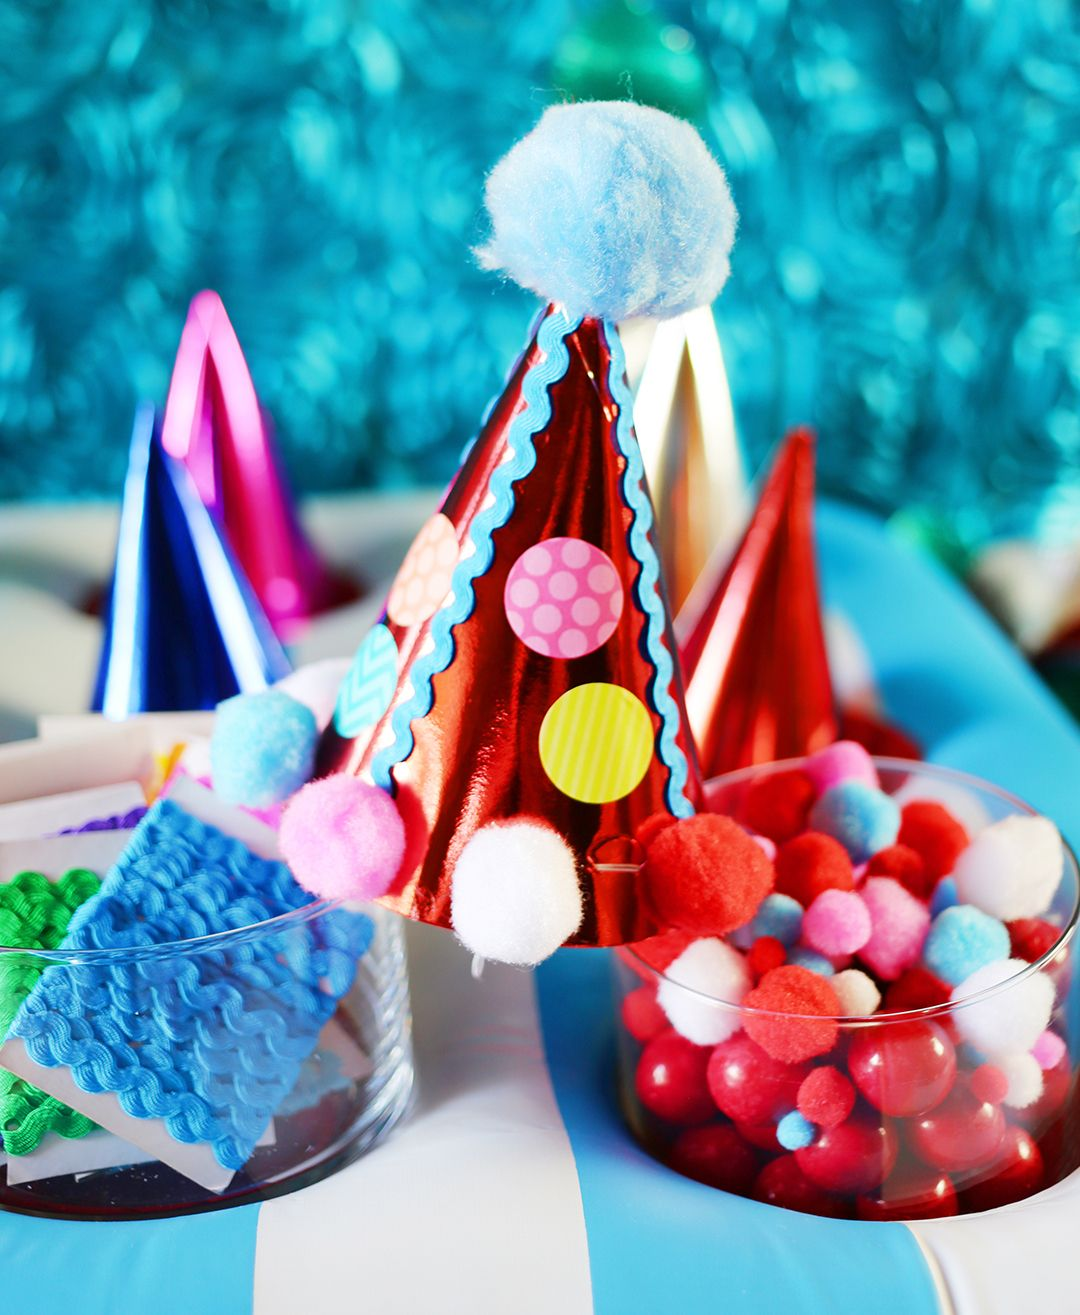 Make Your Own Party Hats Station